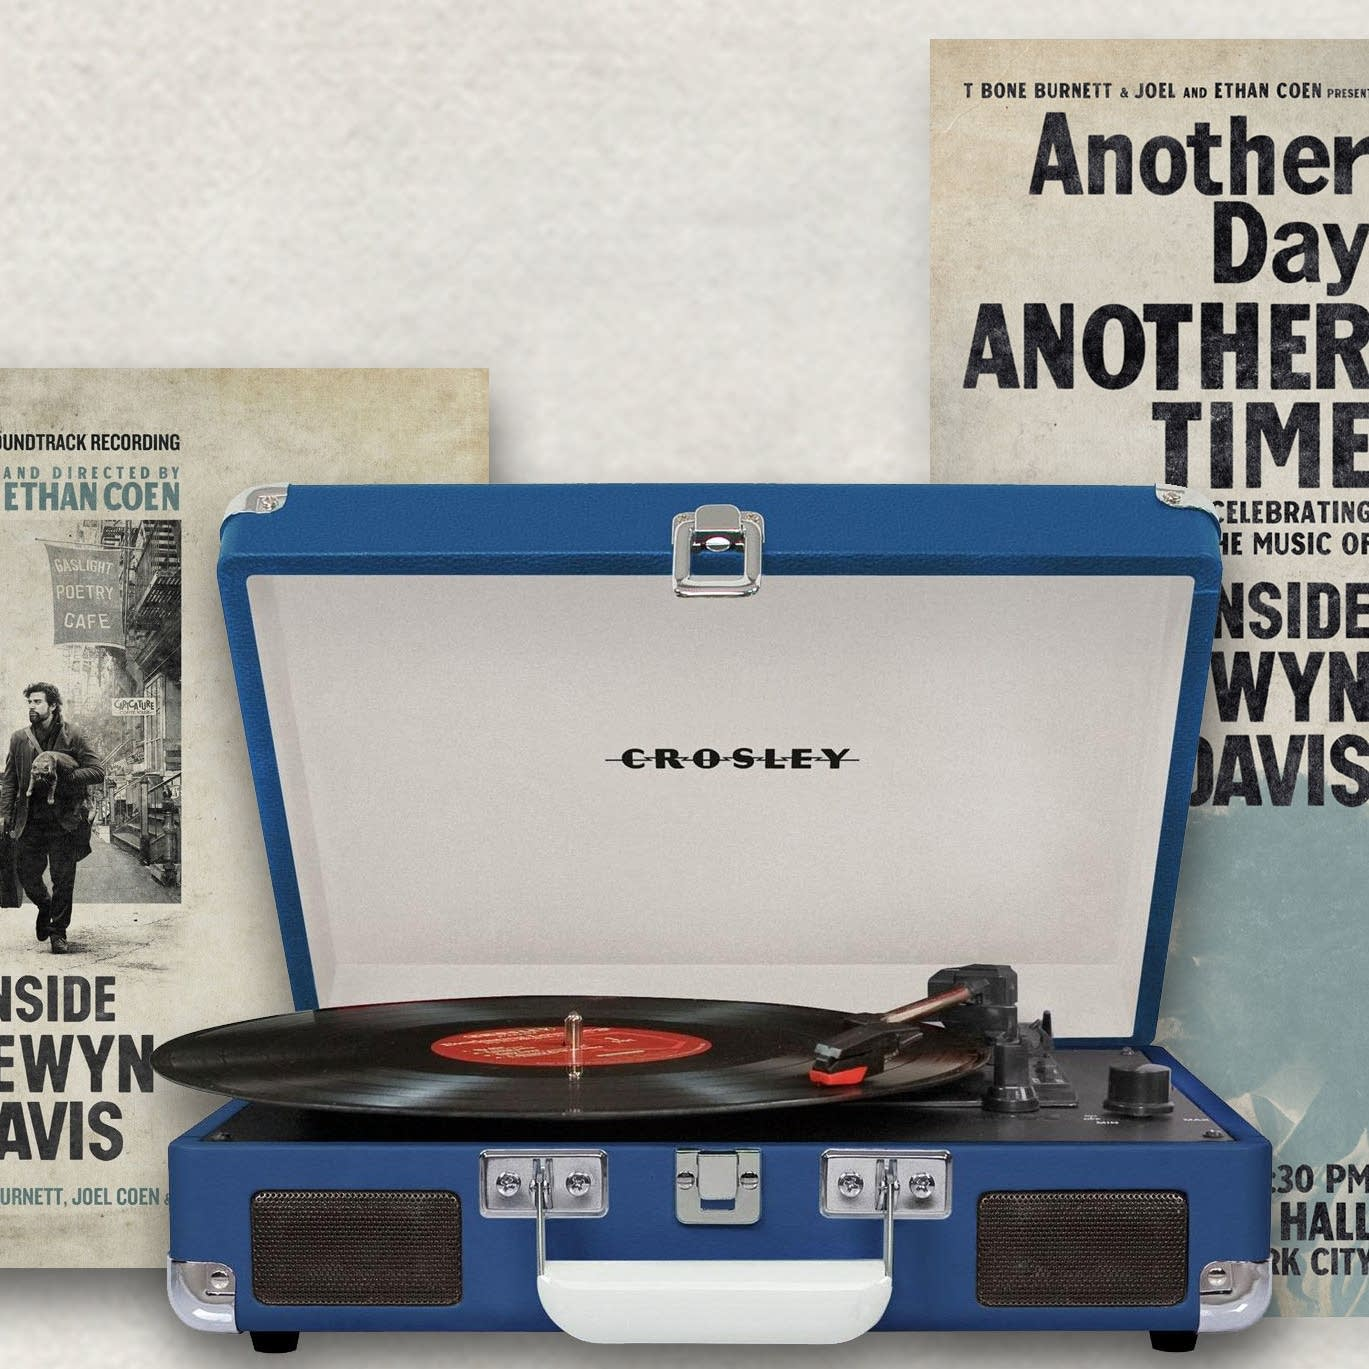 Inside Llewyn Davis vinyl, turntable and poster